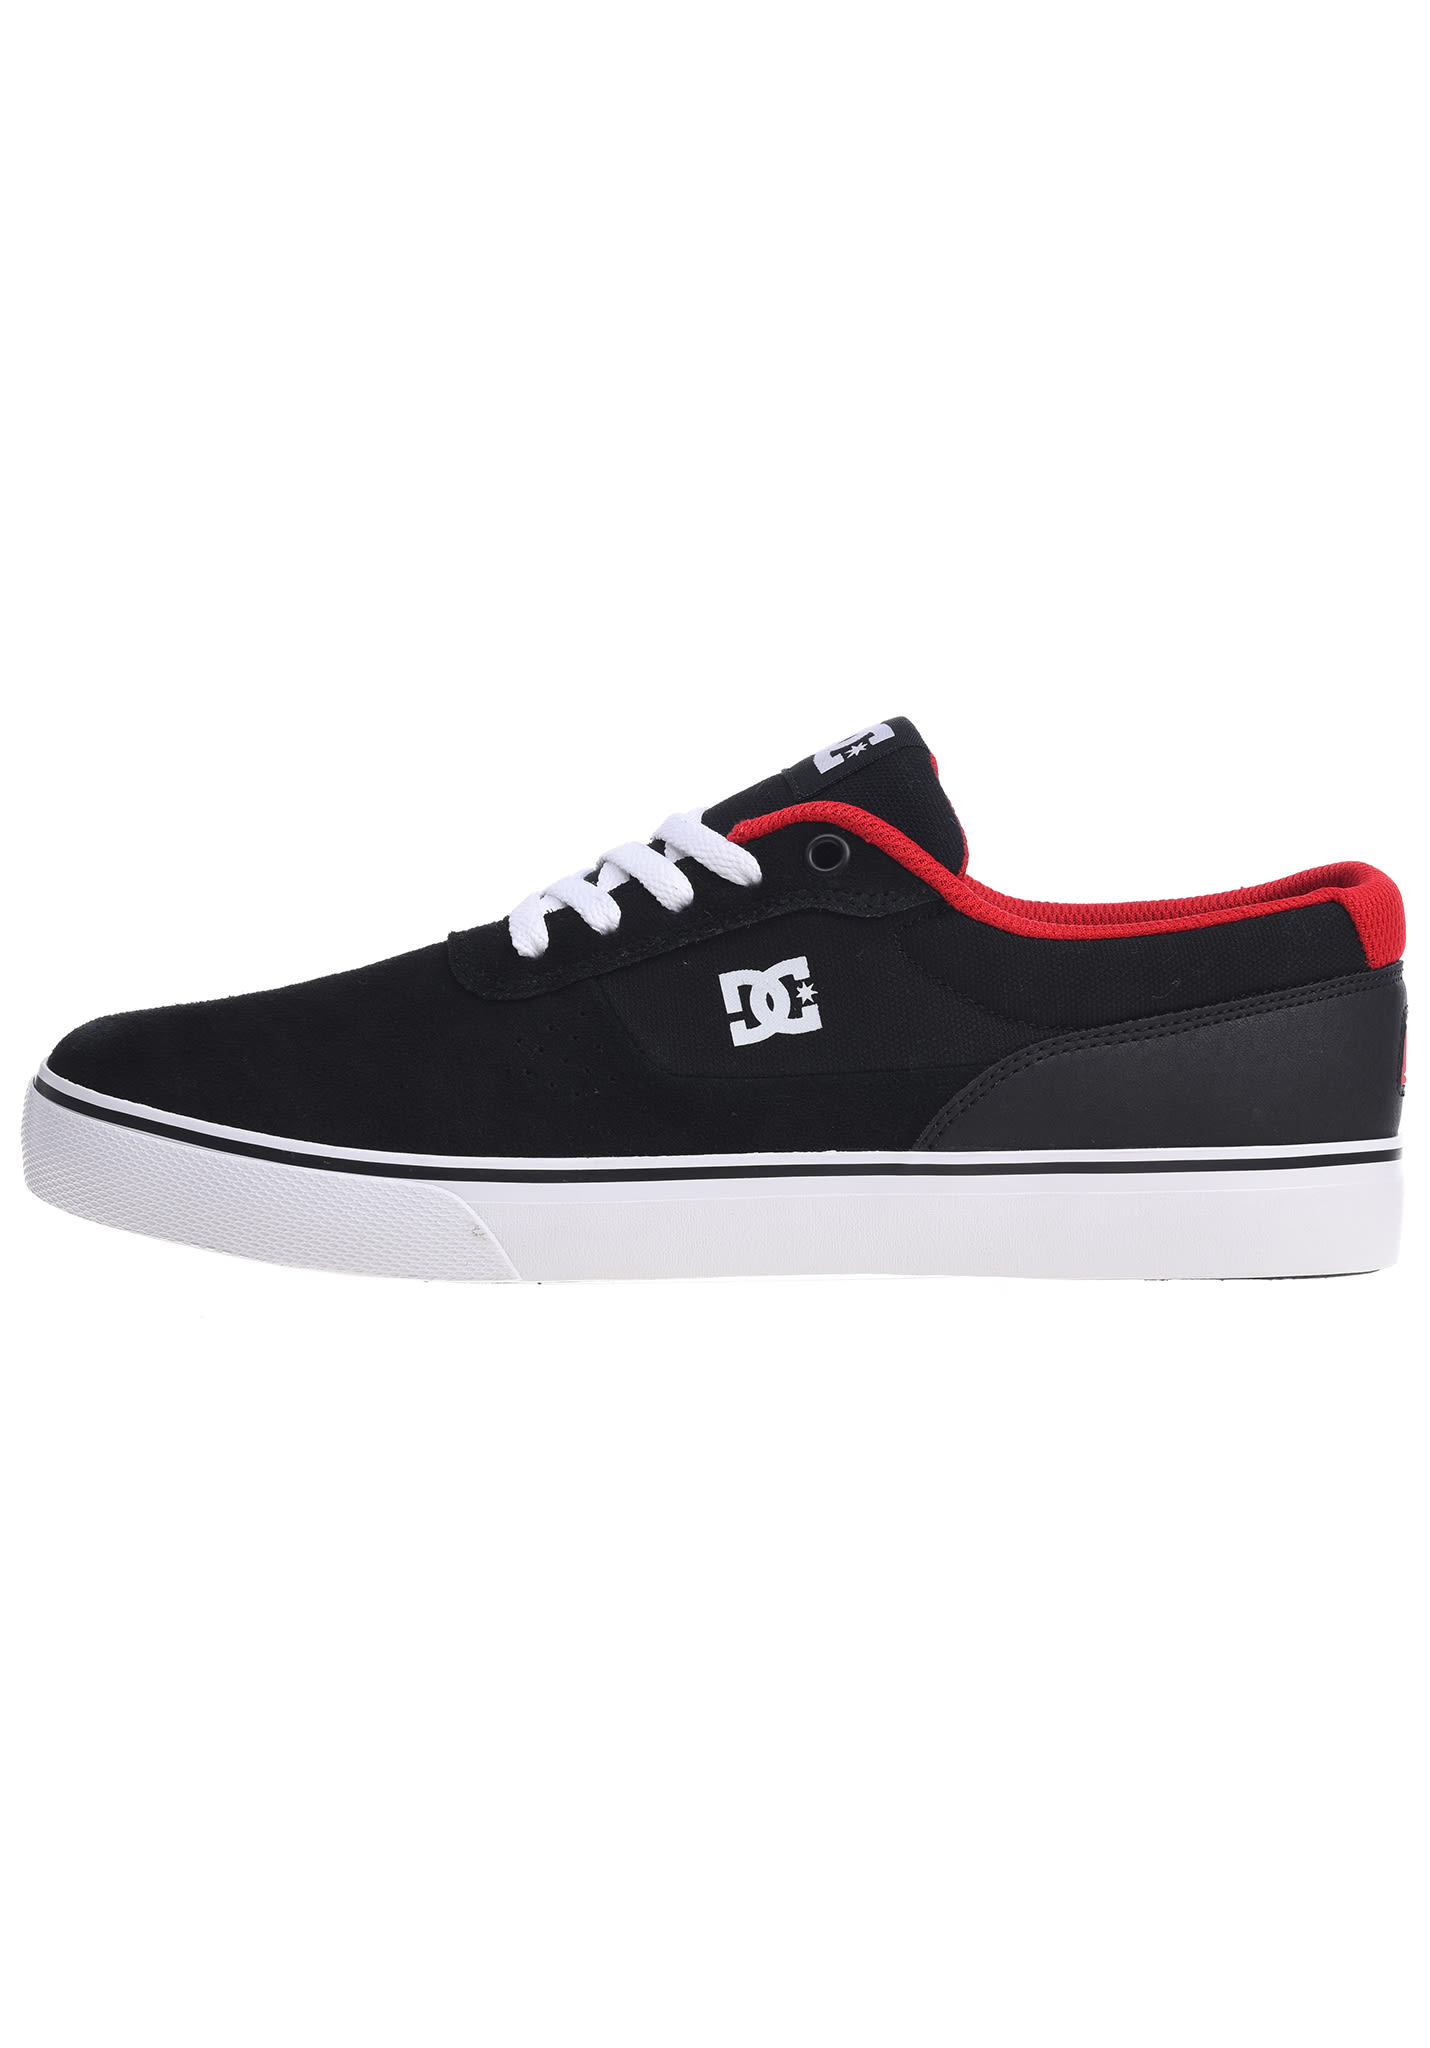 735e586d1a DC Switch - Sneakers for Men - Black - Planet Sports